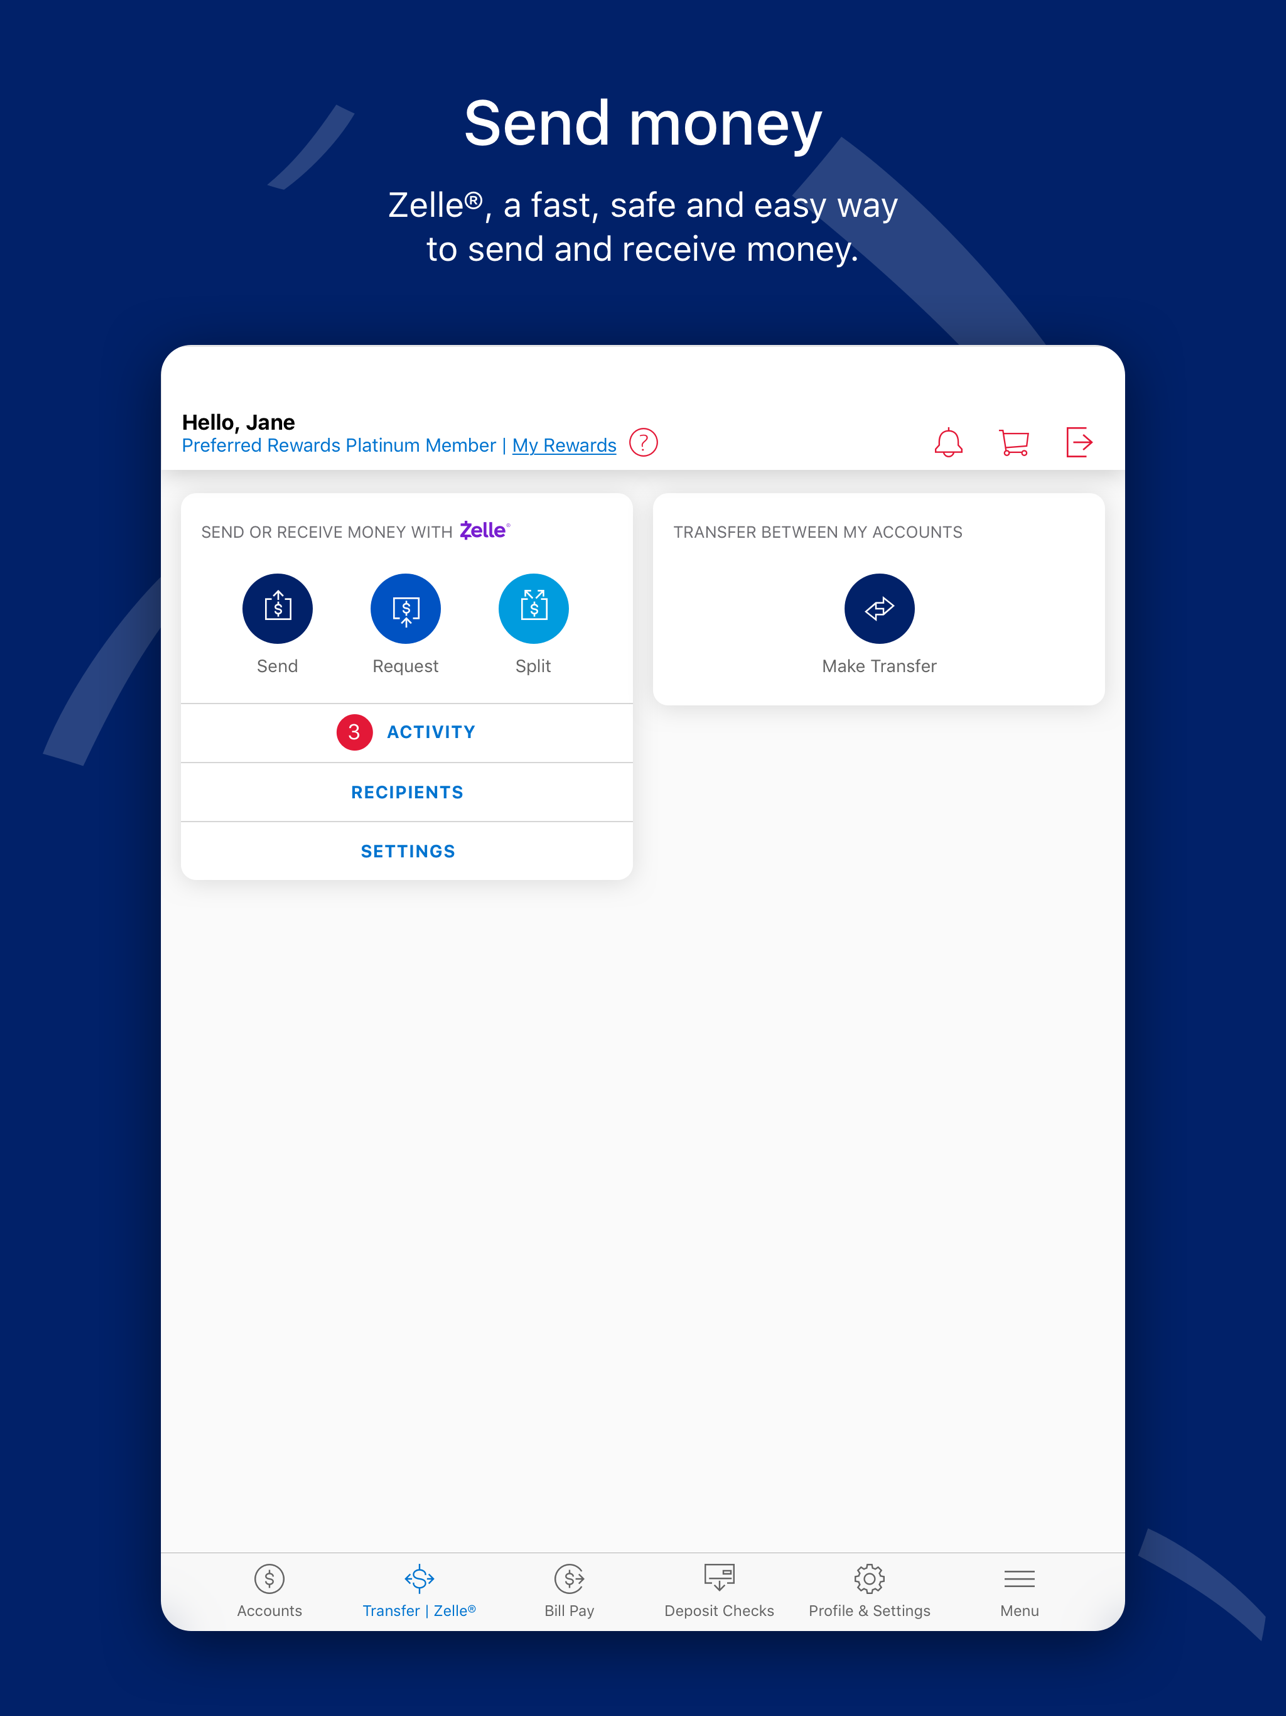 Bank of America Mobile Banking on the App Store in 2020